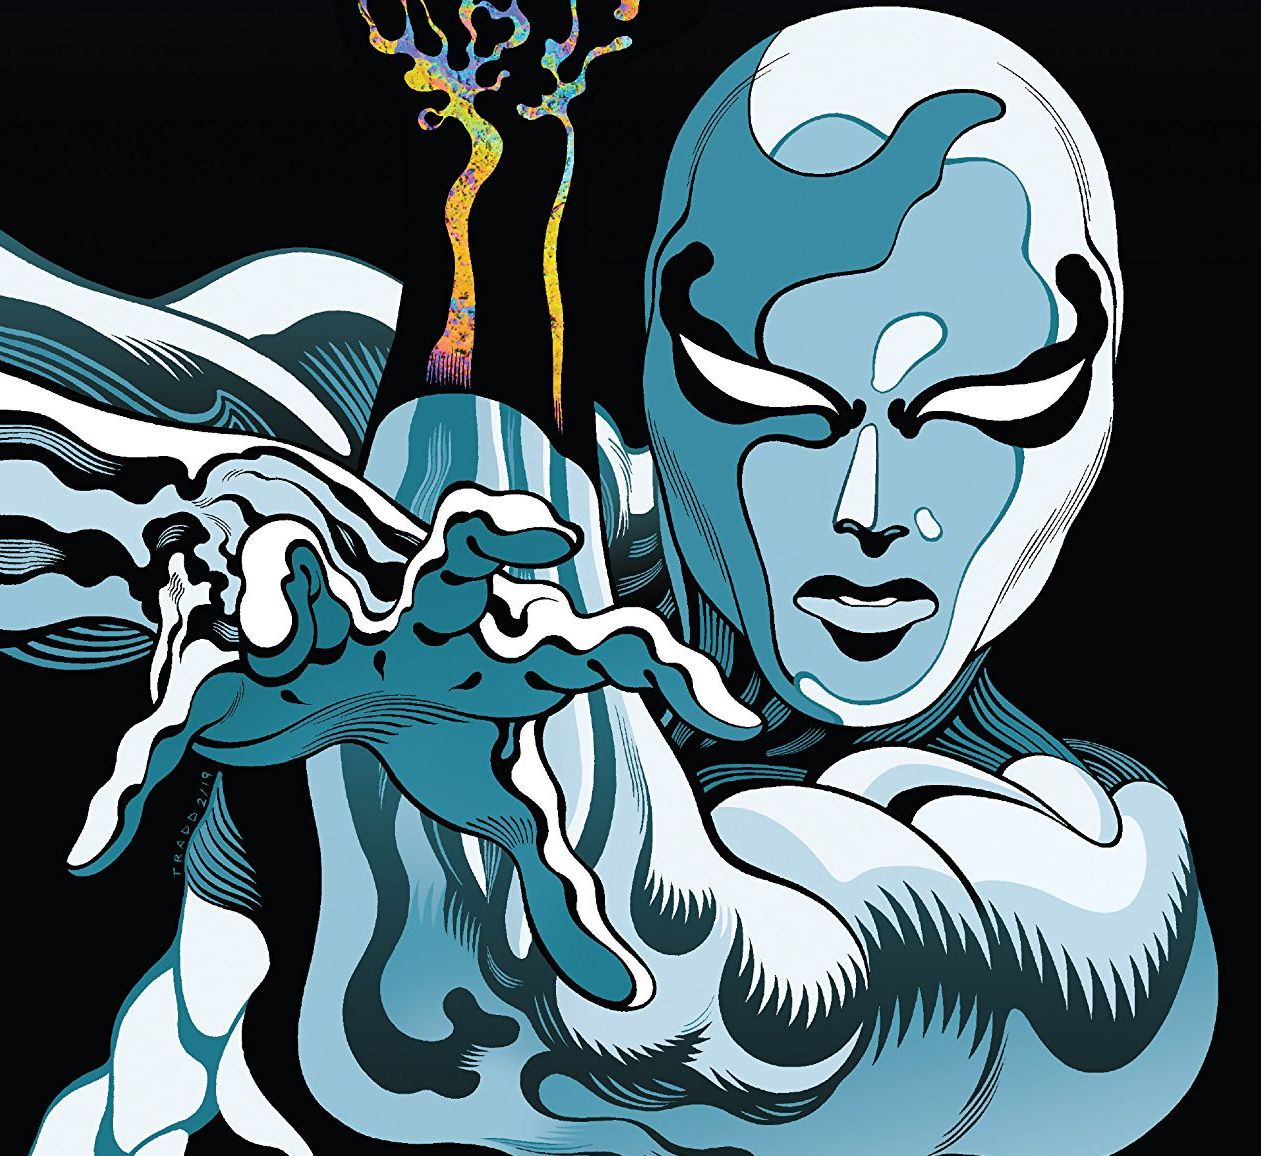 Silver Surfer Black #1 review: Cates and Moore bring the big guns